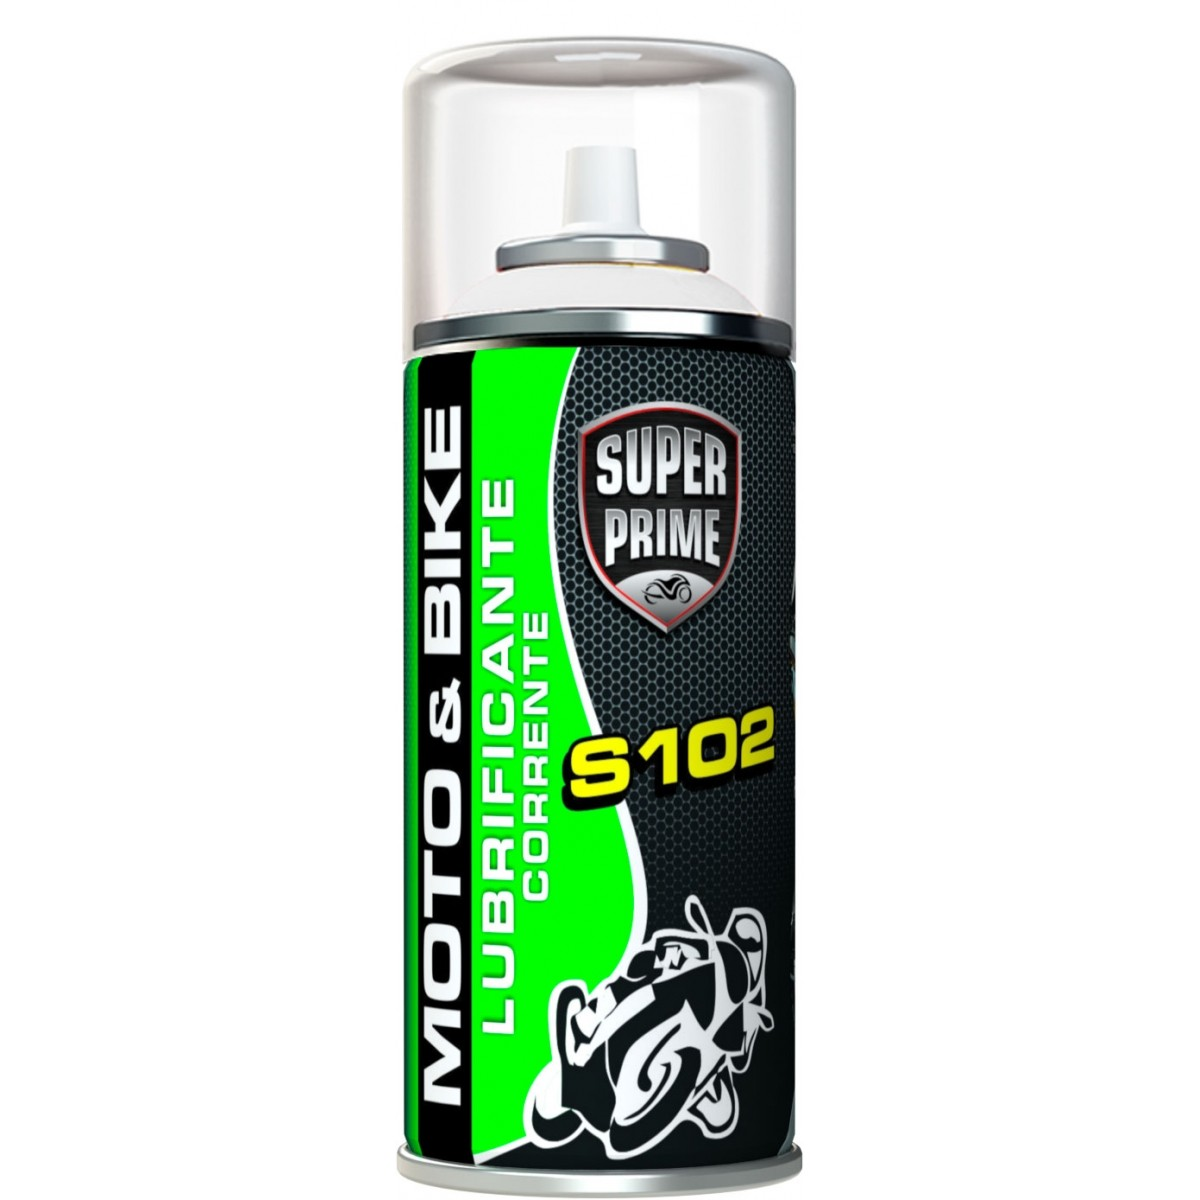 Lubrificante Para Correntes 300ml/60gr Spray Super Prime S102 Moto & Bike